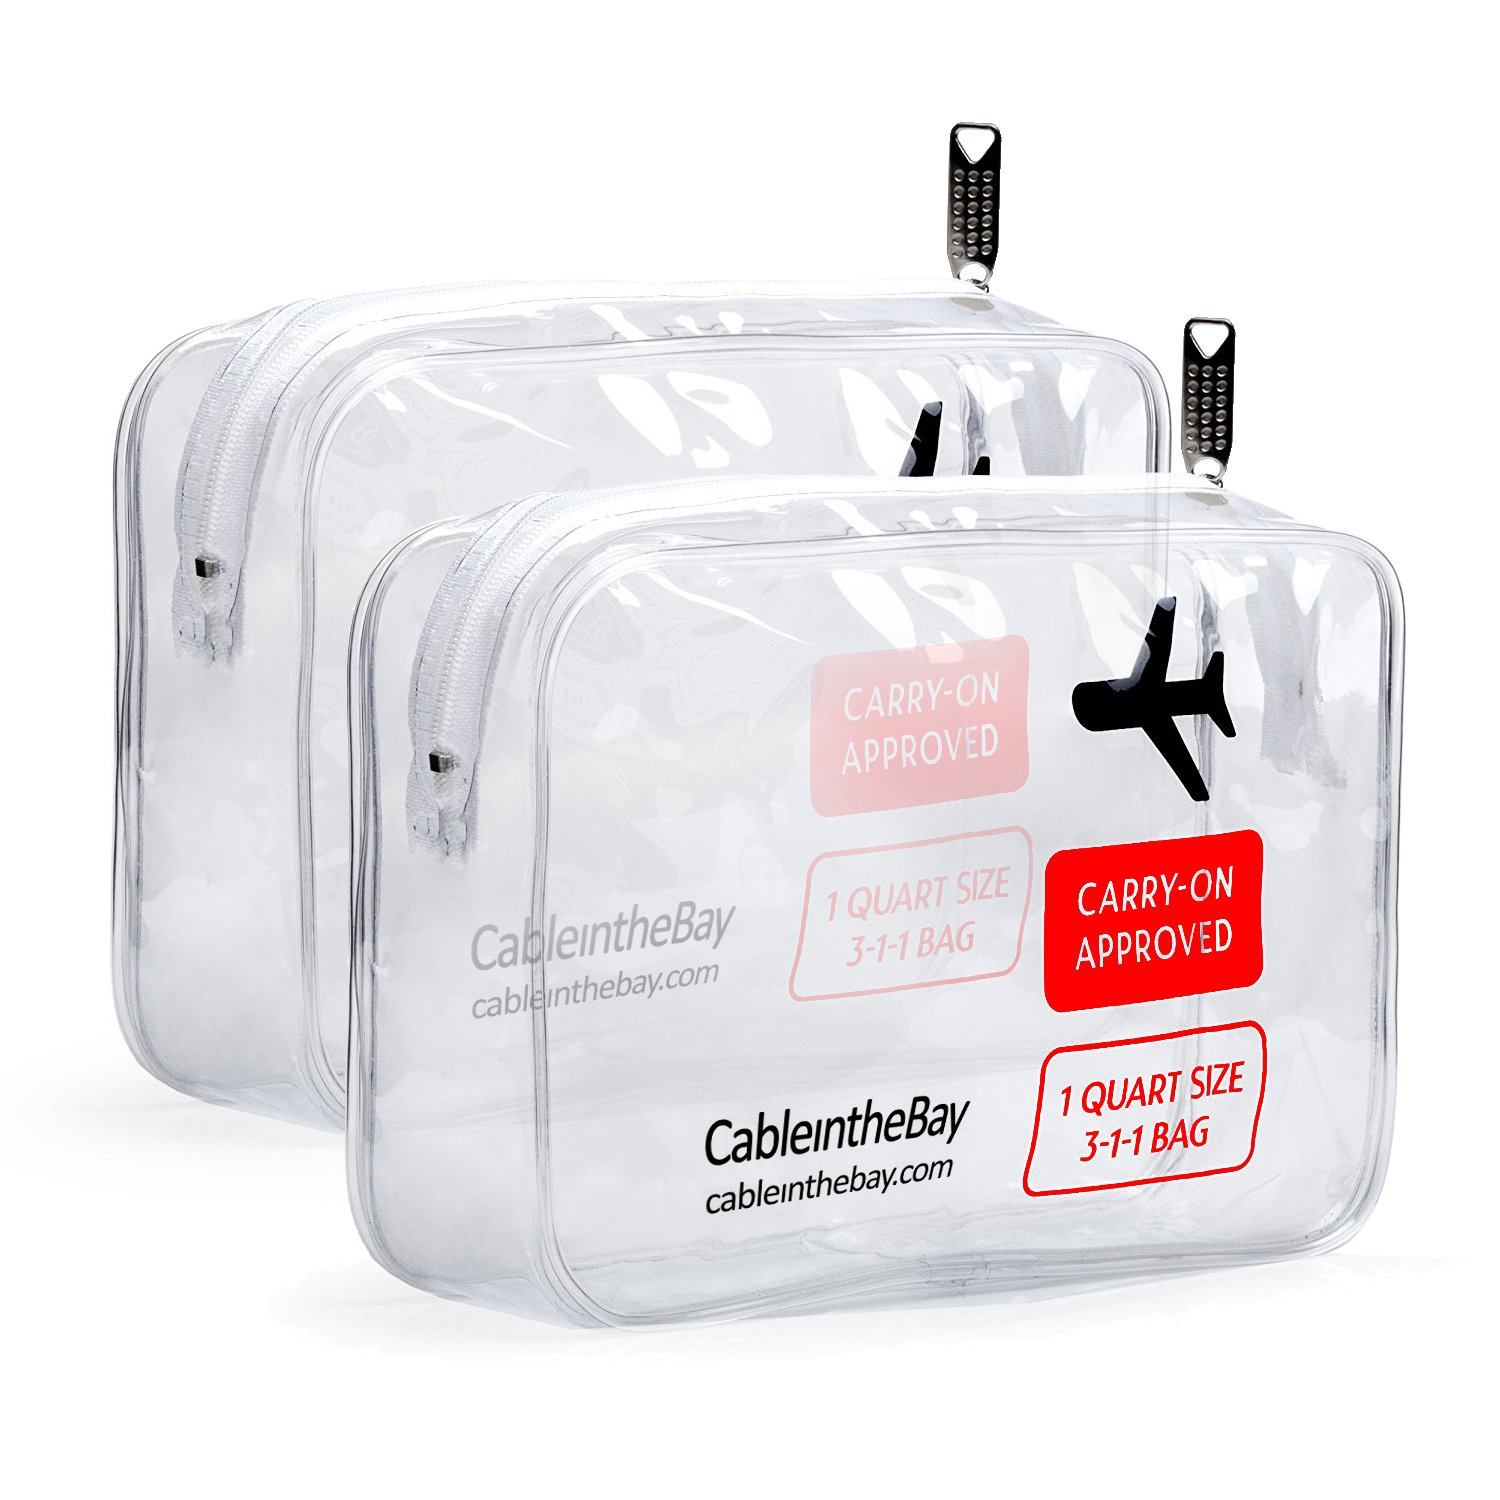 Cableinthebay TSA Approved Clear Travel Toiletry Bag-Quart Sized with Zipper-Airport Airline Compliant Bag/Bottles-Men's/Women's 3-1-1 Kit+Travel EBOOK